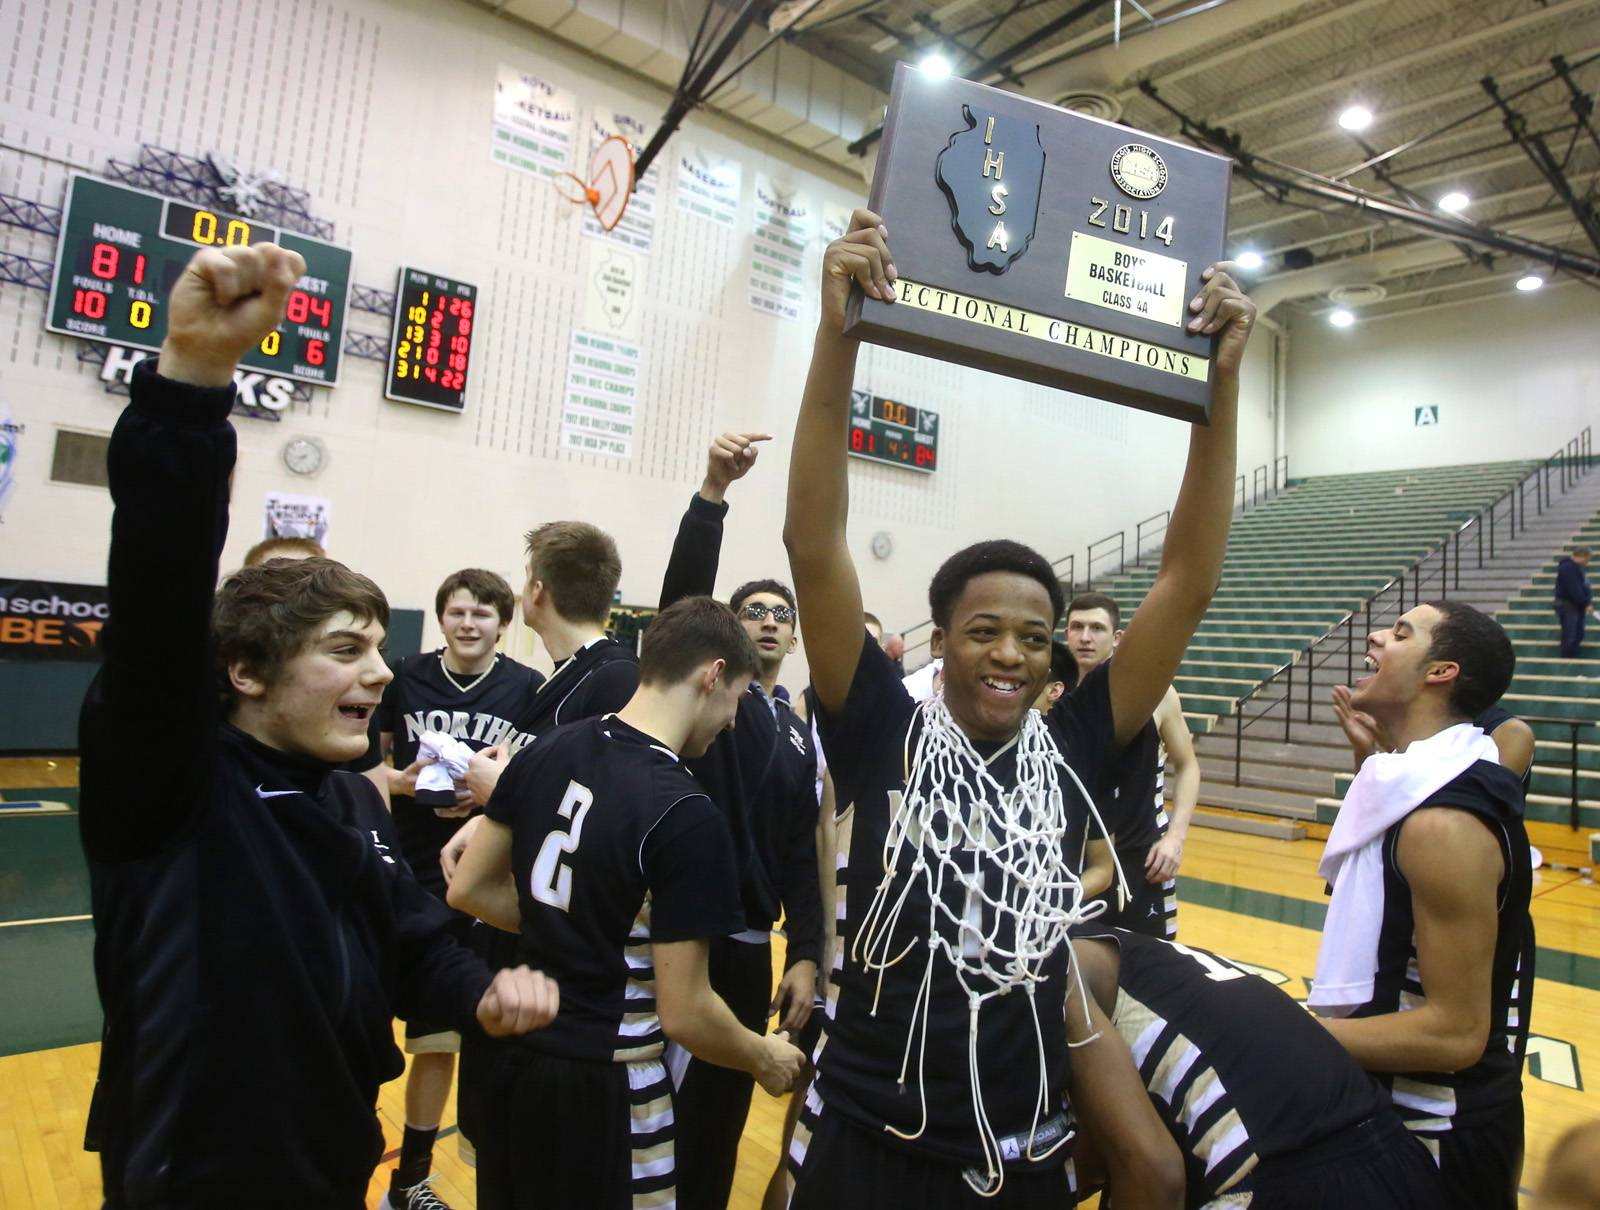 Down 20, Glenbard North comes back to win